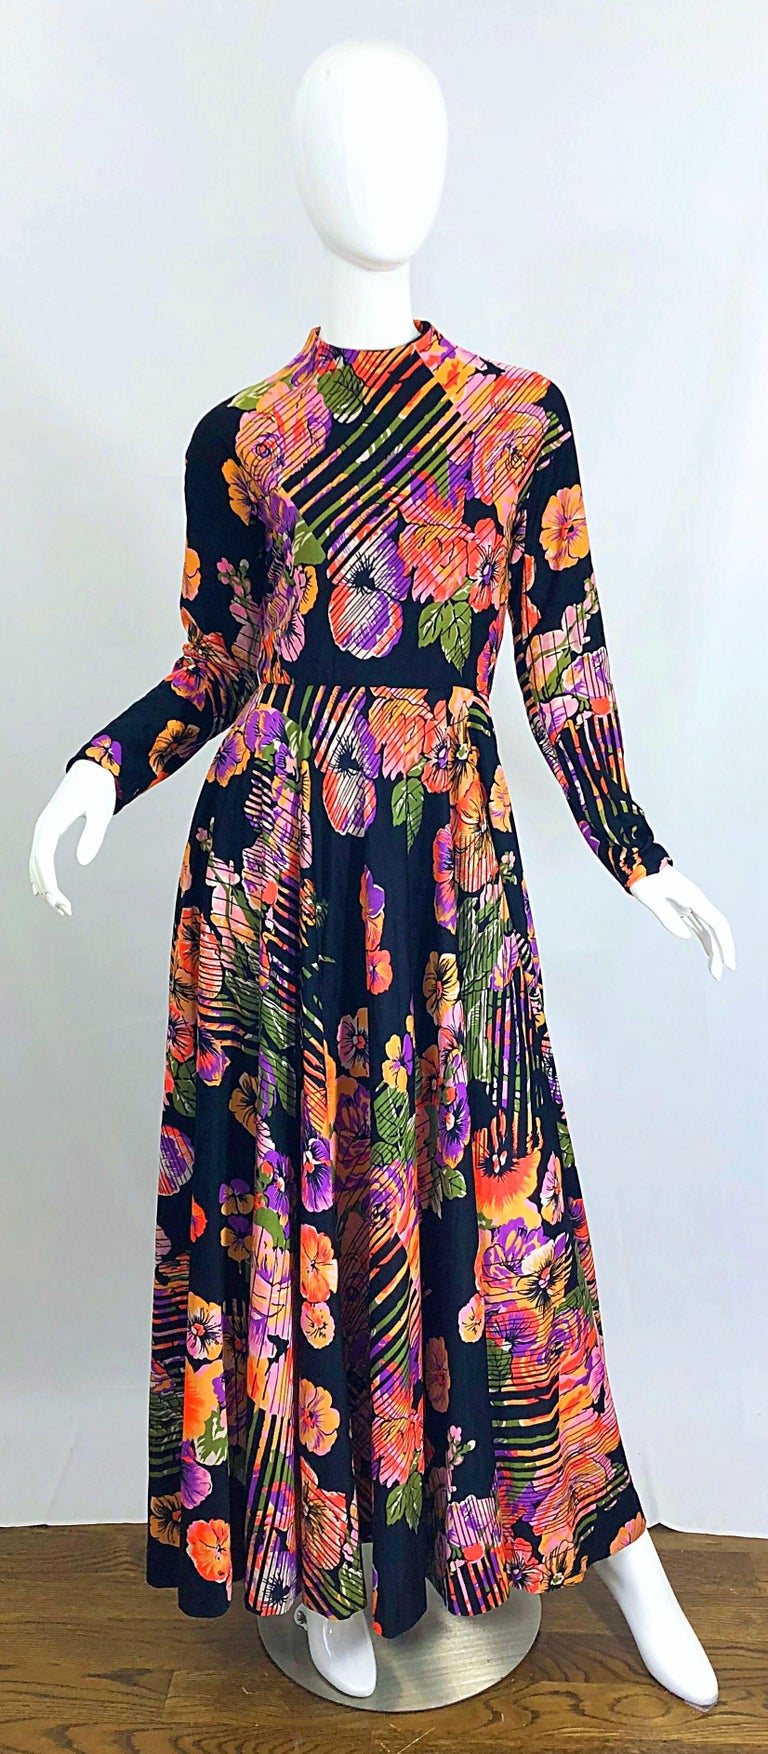 Fantastic vintage 1970s GEOFFREY BEENE abstract flower print long sleeve high neck jersey maki dress. Features floral prints in vibrant colors of purple, pink, peach, orange, green and white on a black background. Super soft double ply jersey